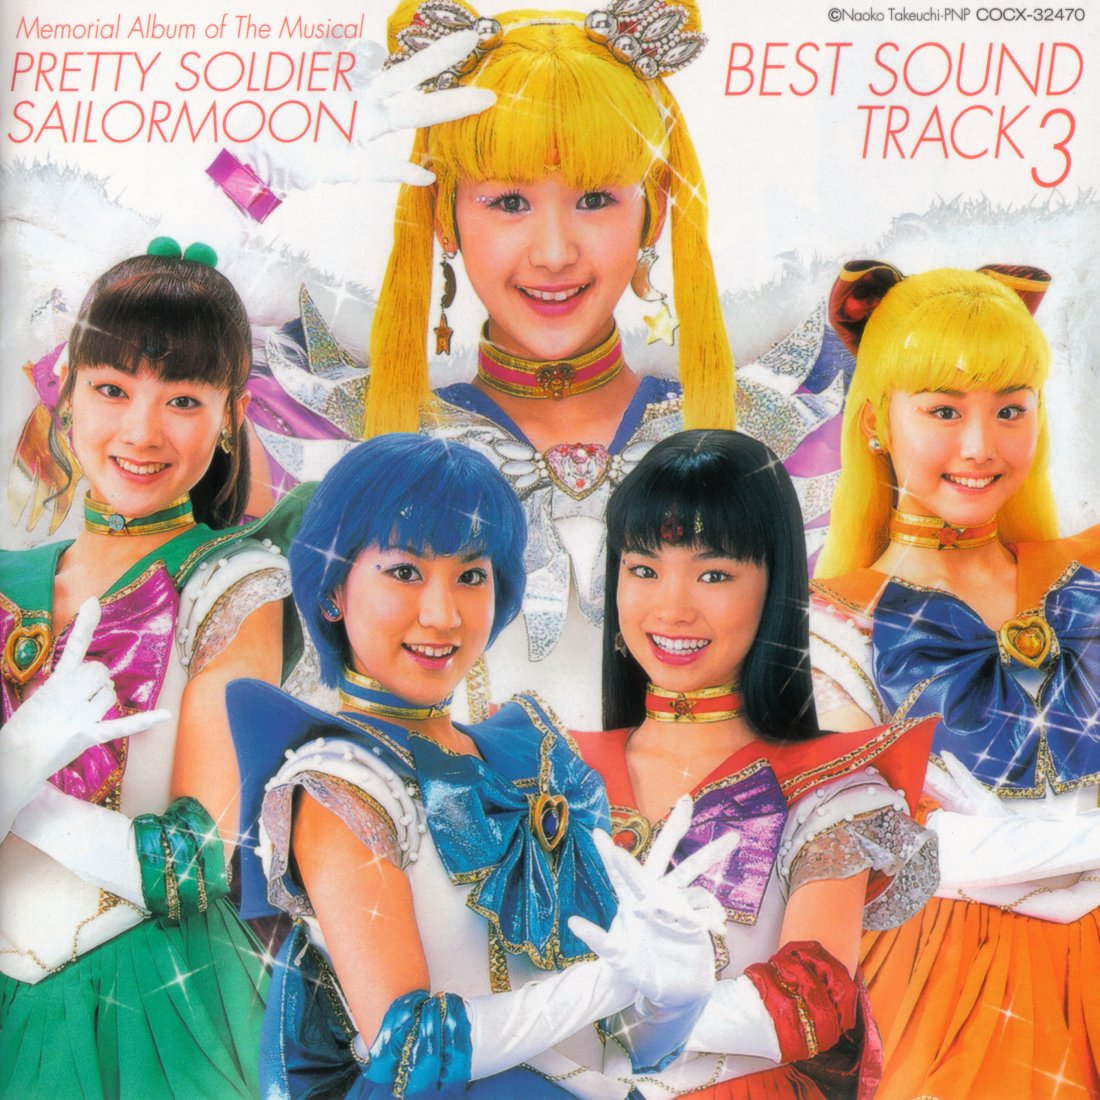 Memorial Album of the Musical - Pretty Soldier Sailor Moon - Best Sound Track 3